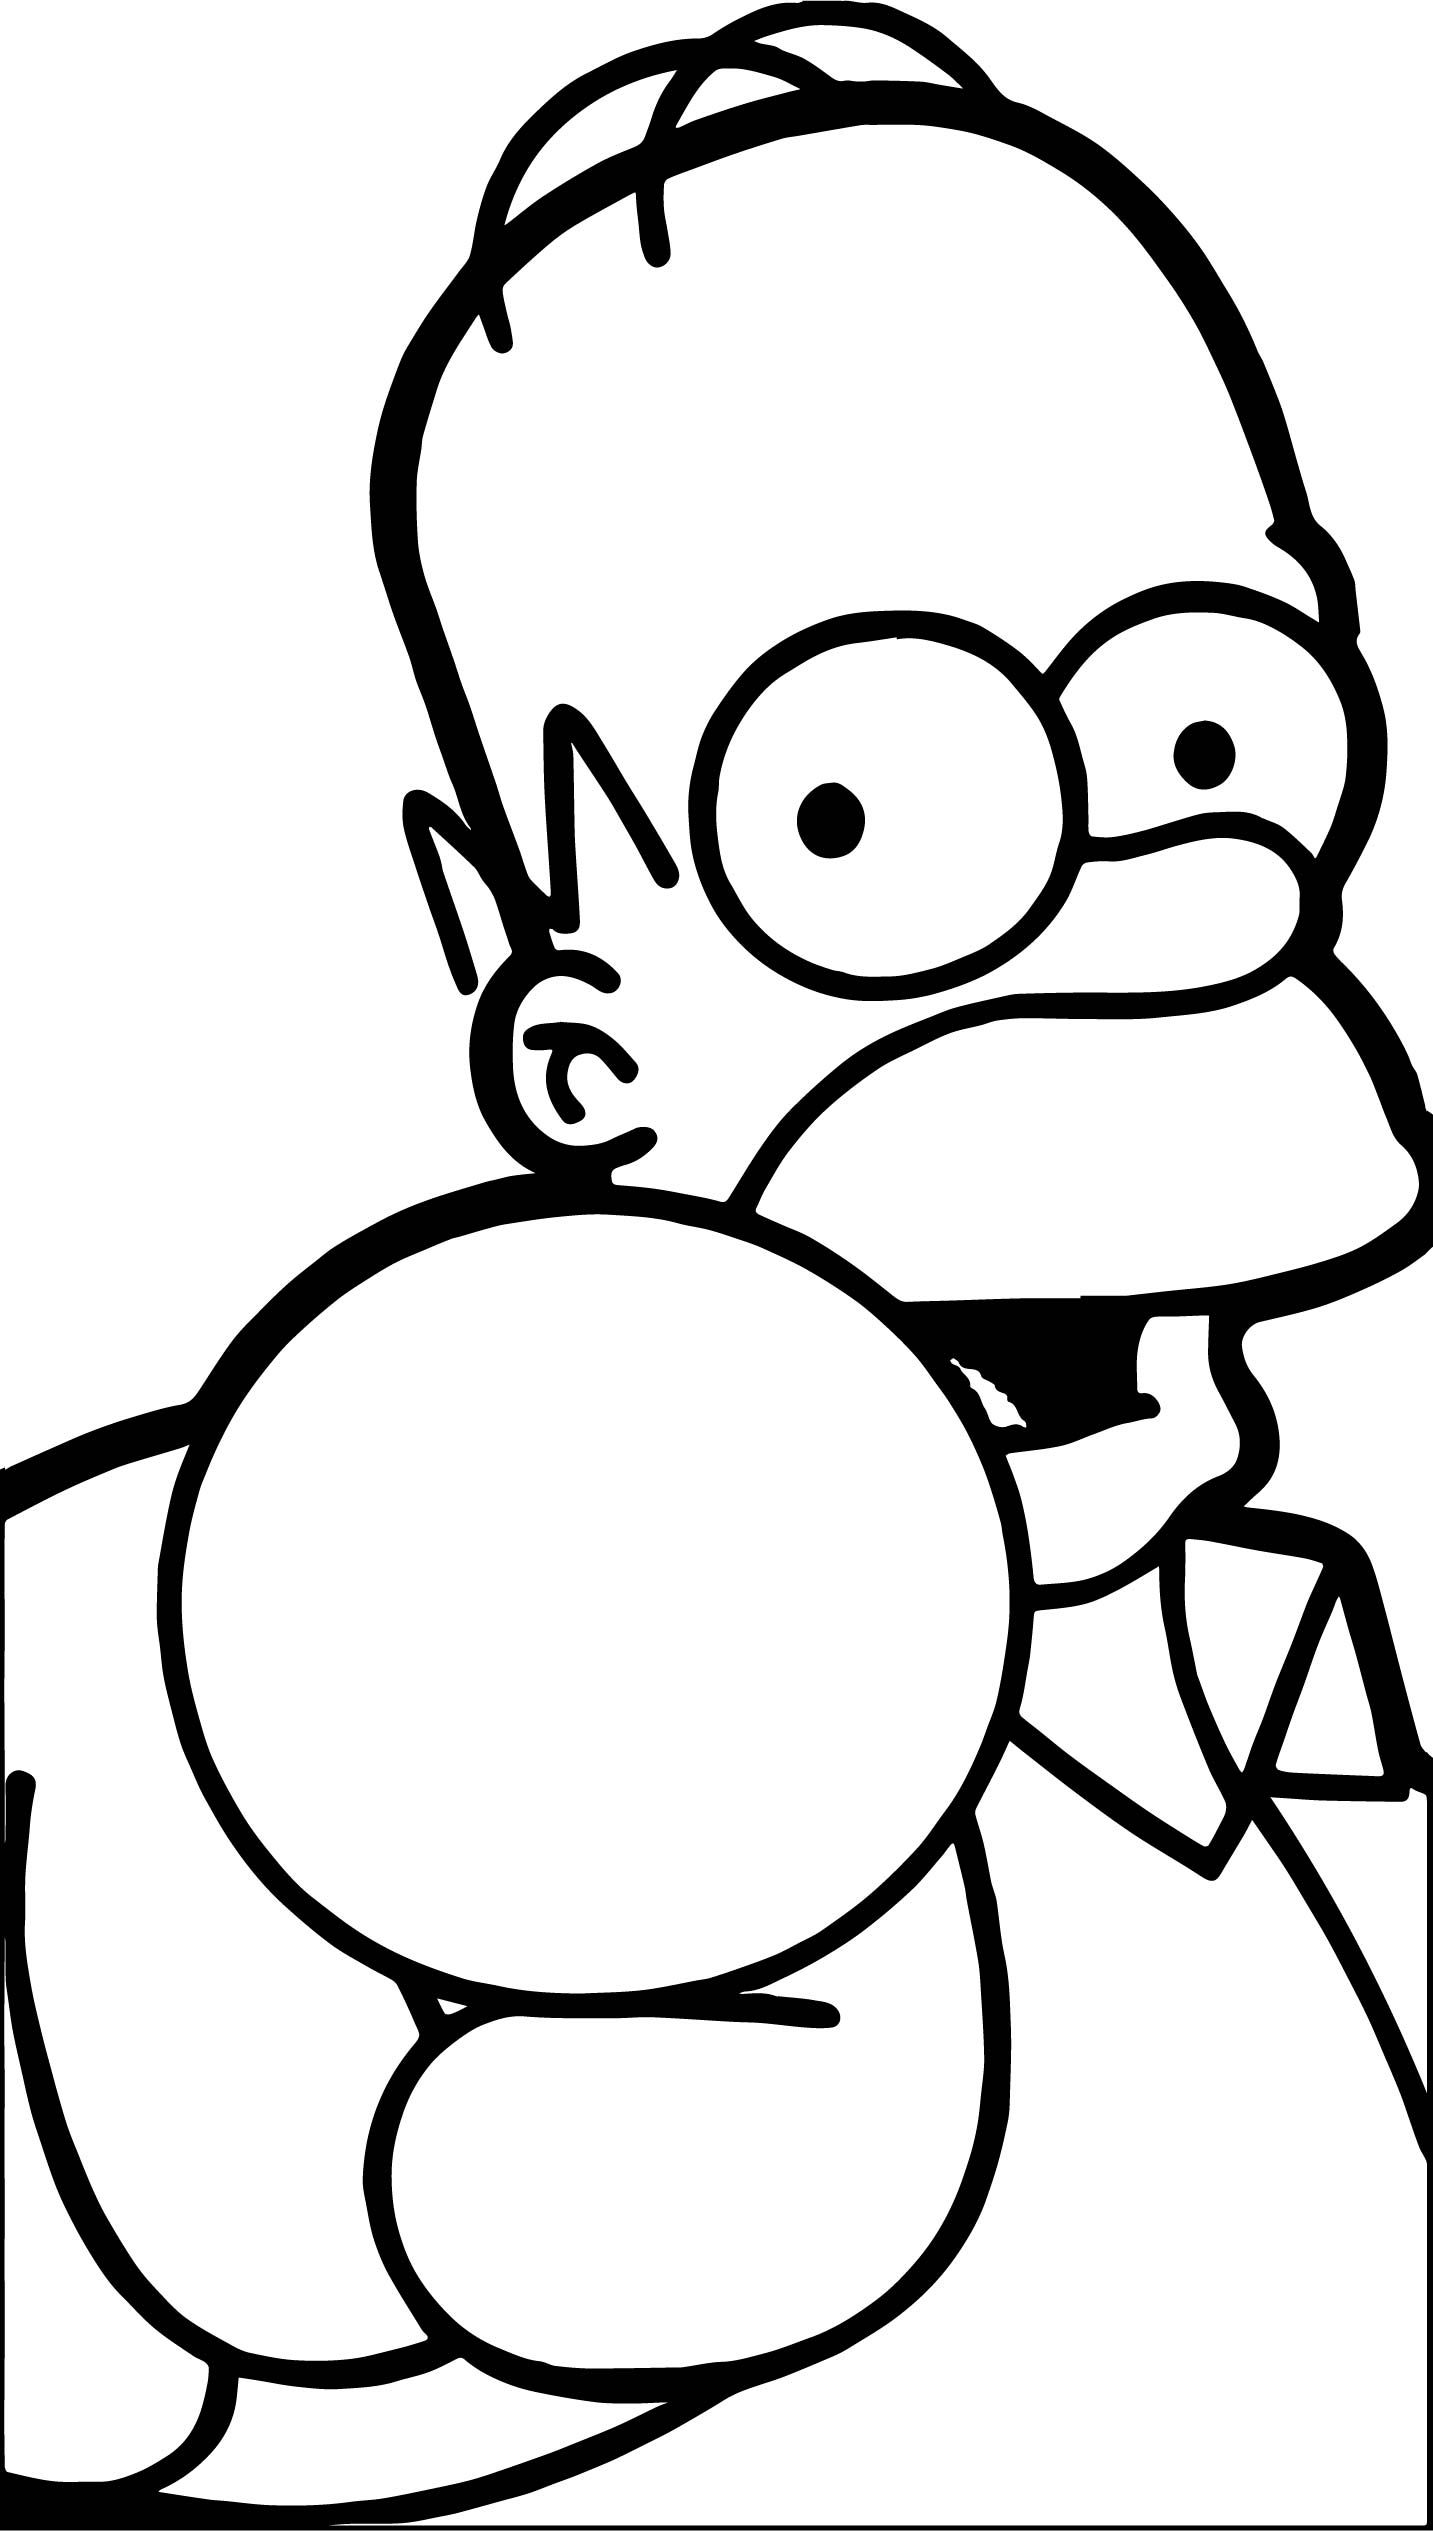 Awesome The Simpsons You Coloring Page The Simpsons Coloring Pages Simpson